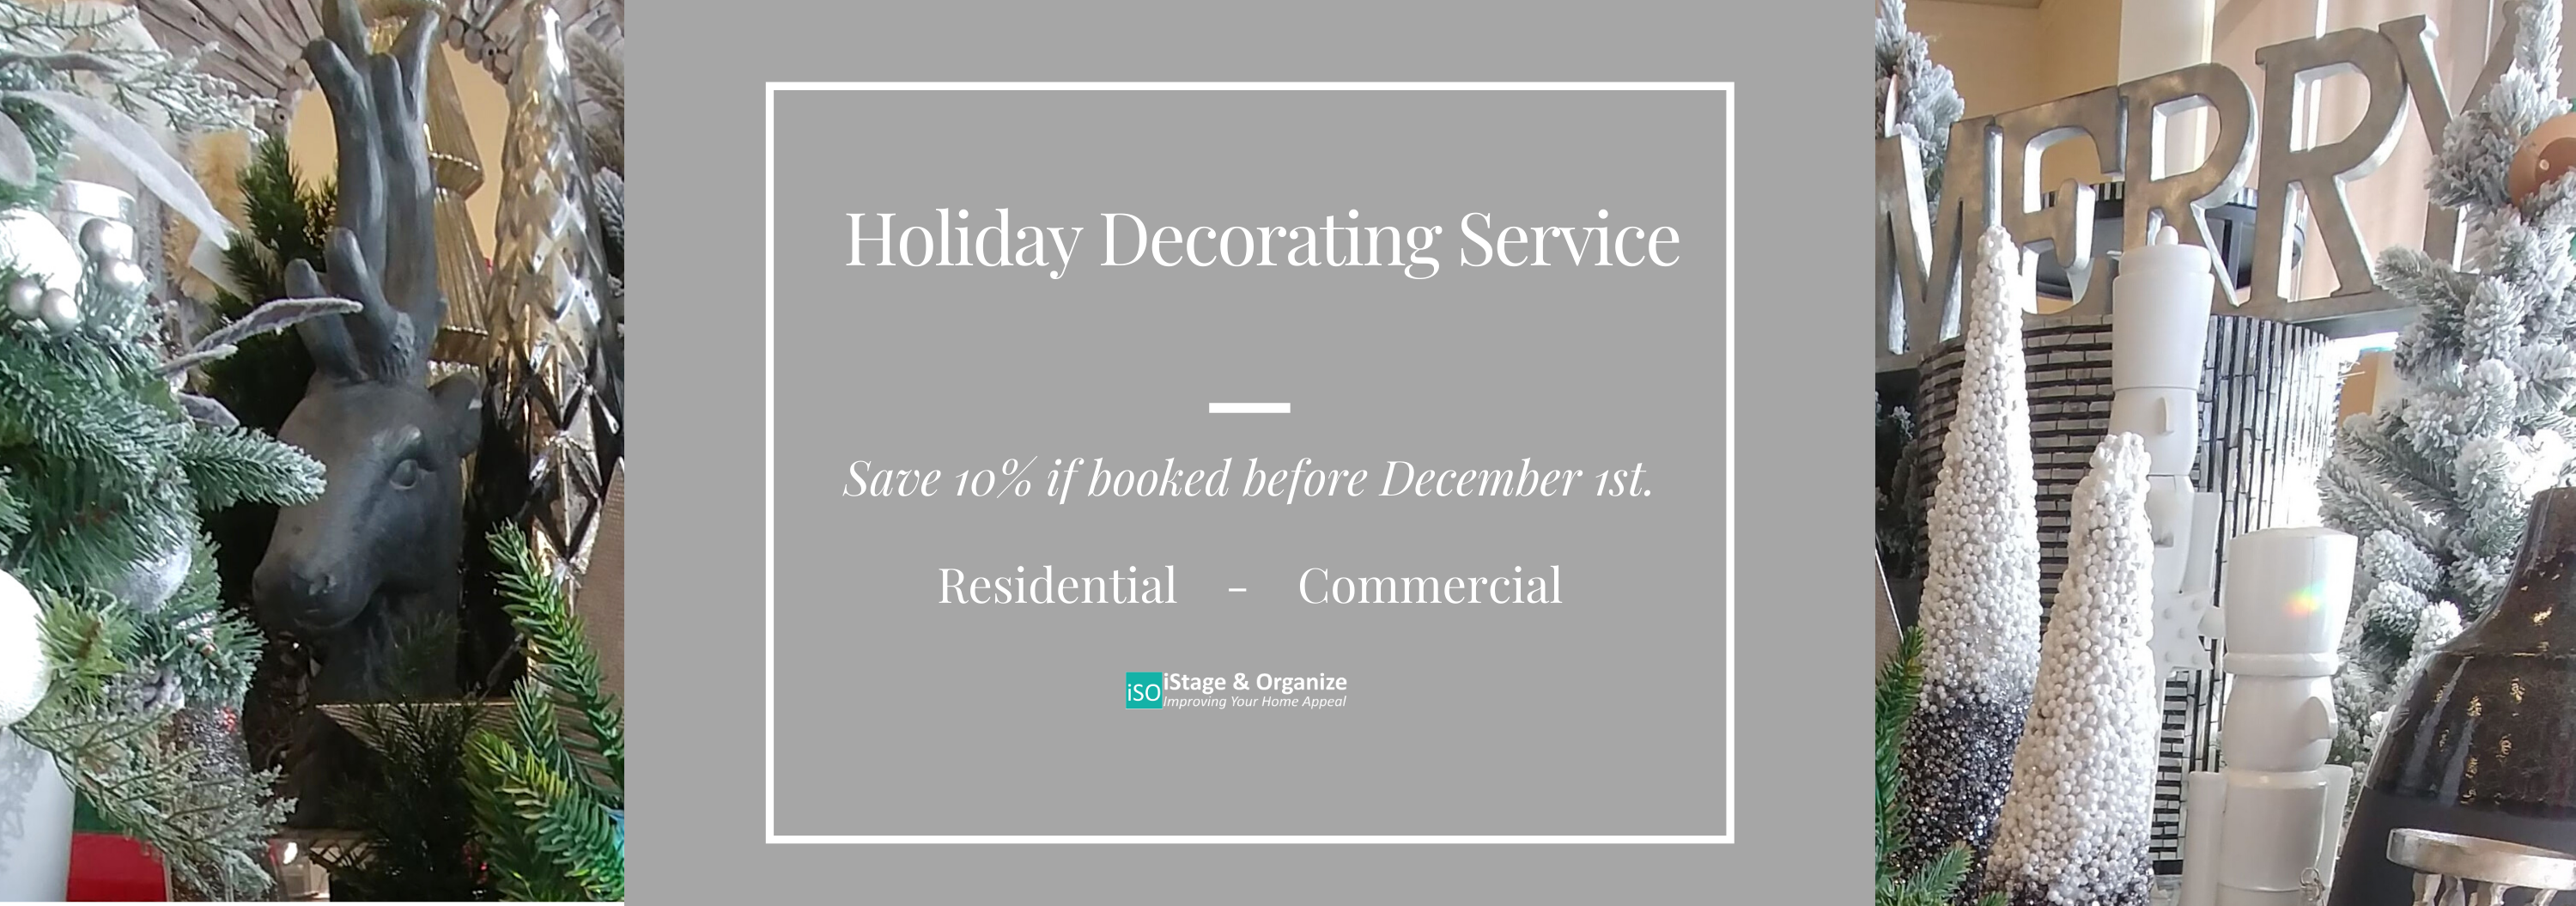 holiday decorating service